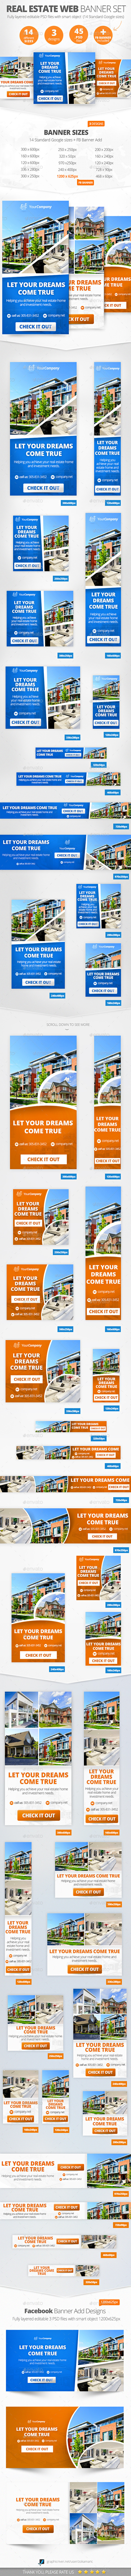 Real Estate Web Banner Set (45 PSD) - Banners & Ads Web Elements